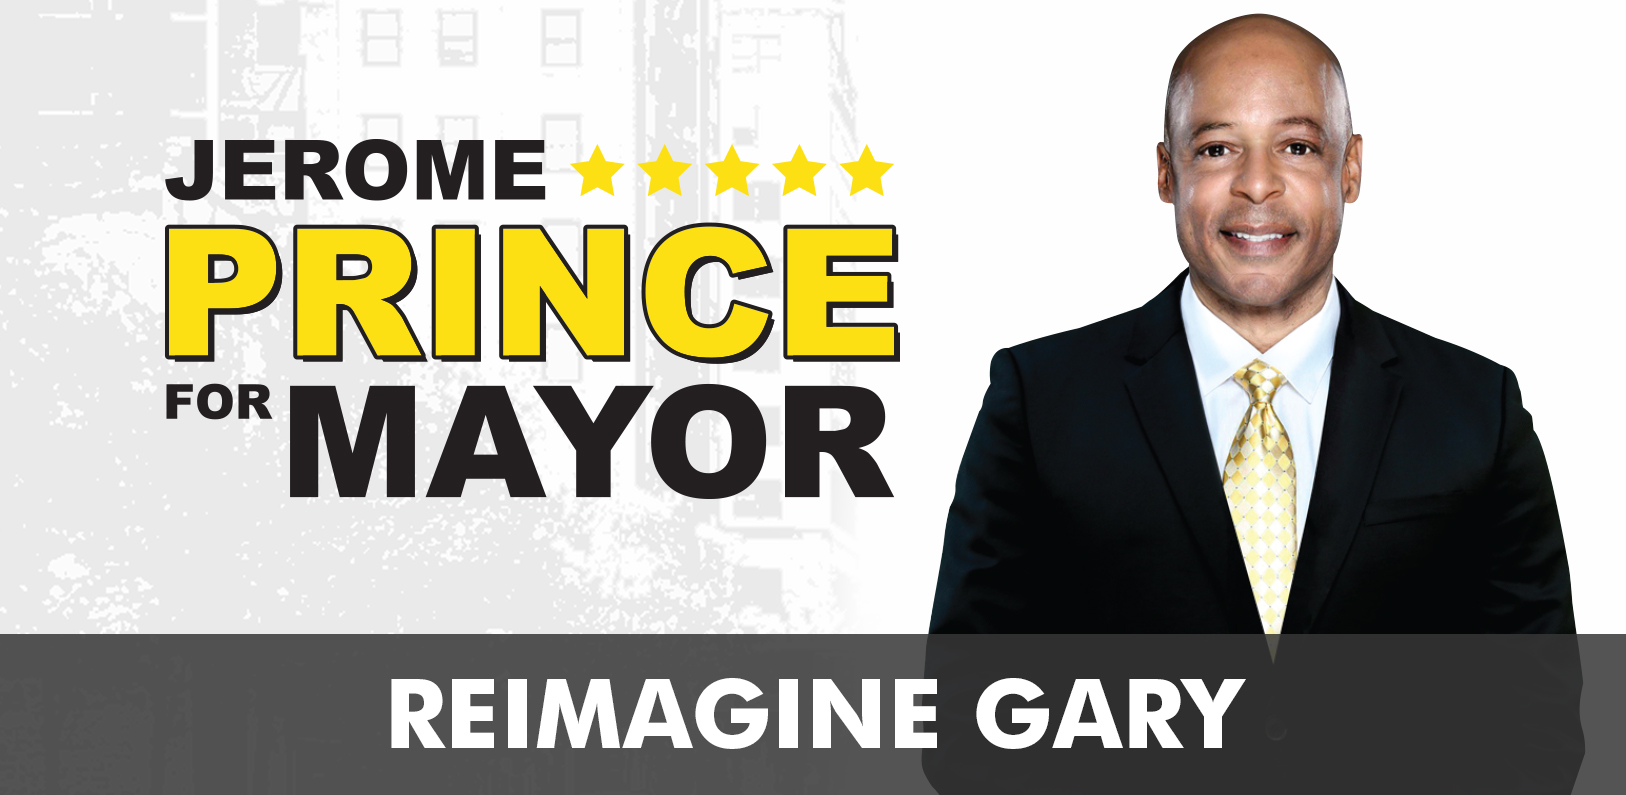 Jerome Prince for Mayor Of Gary